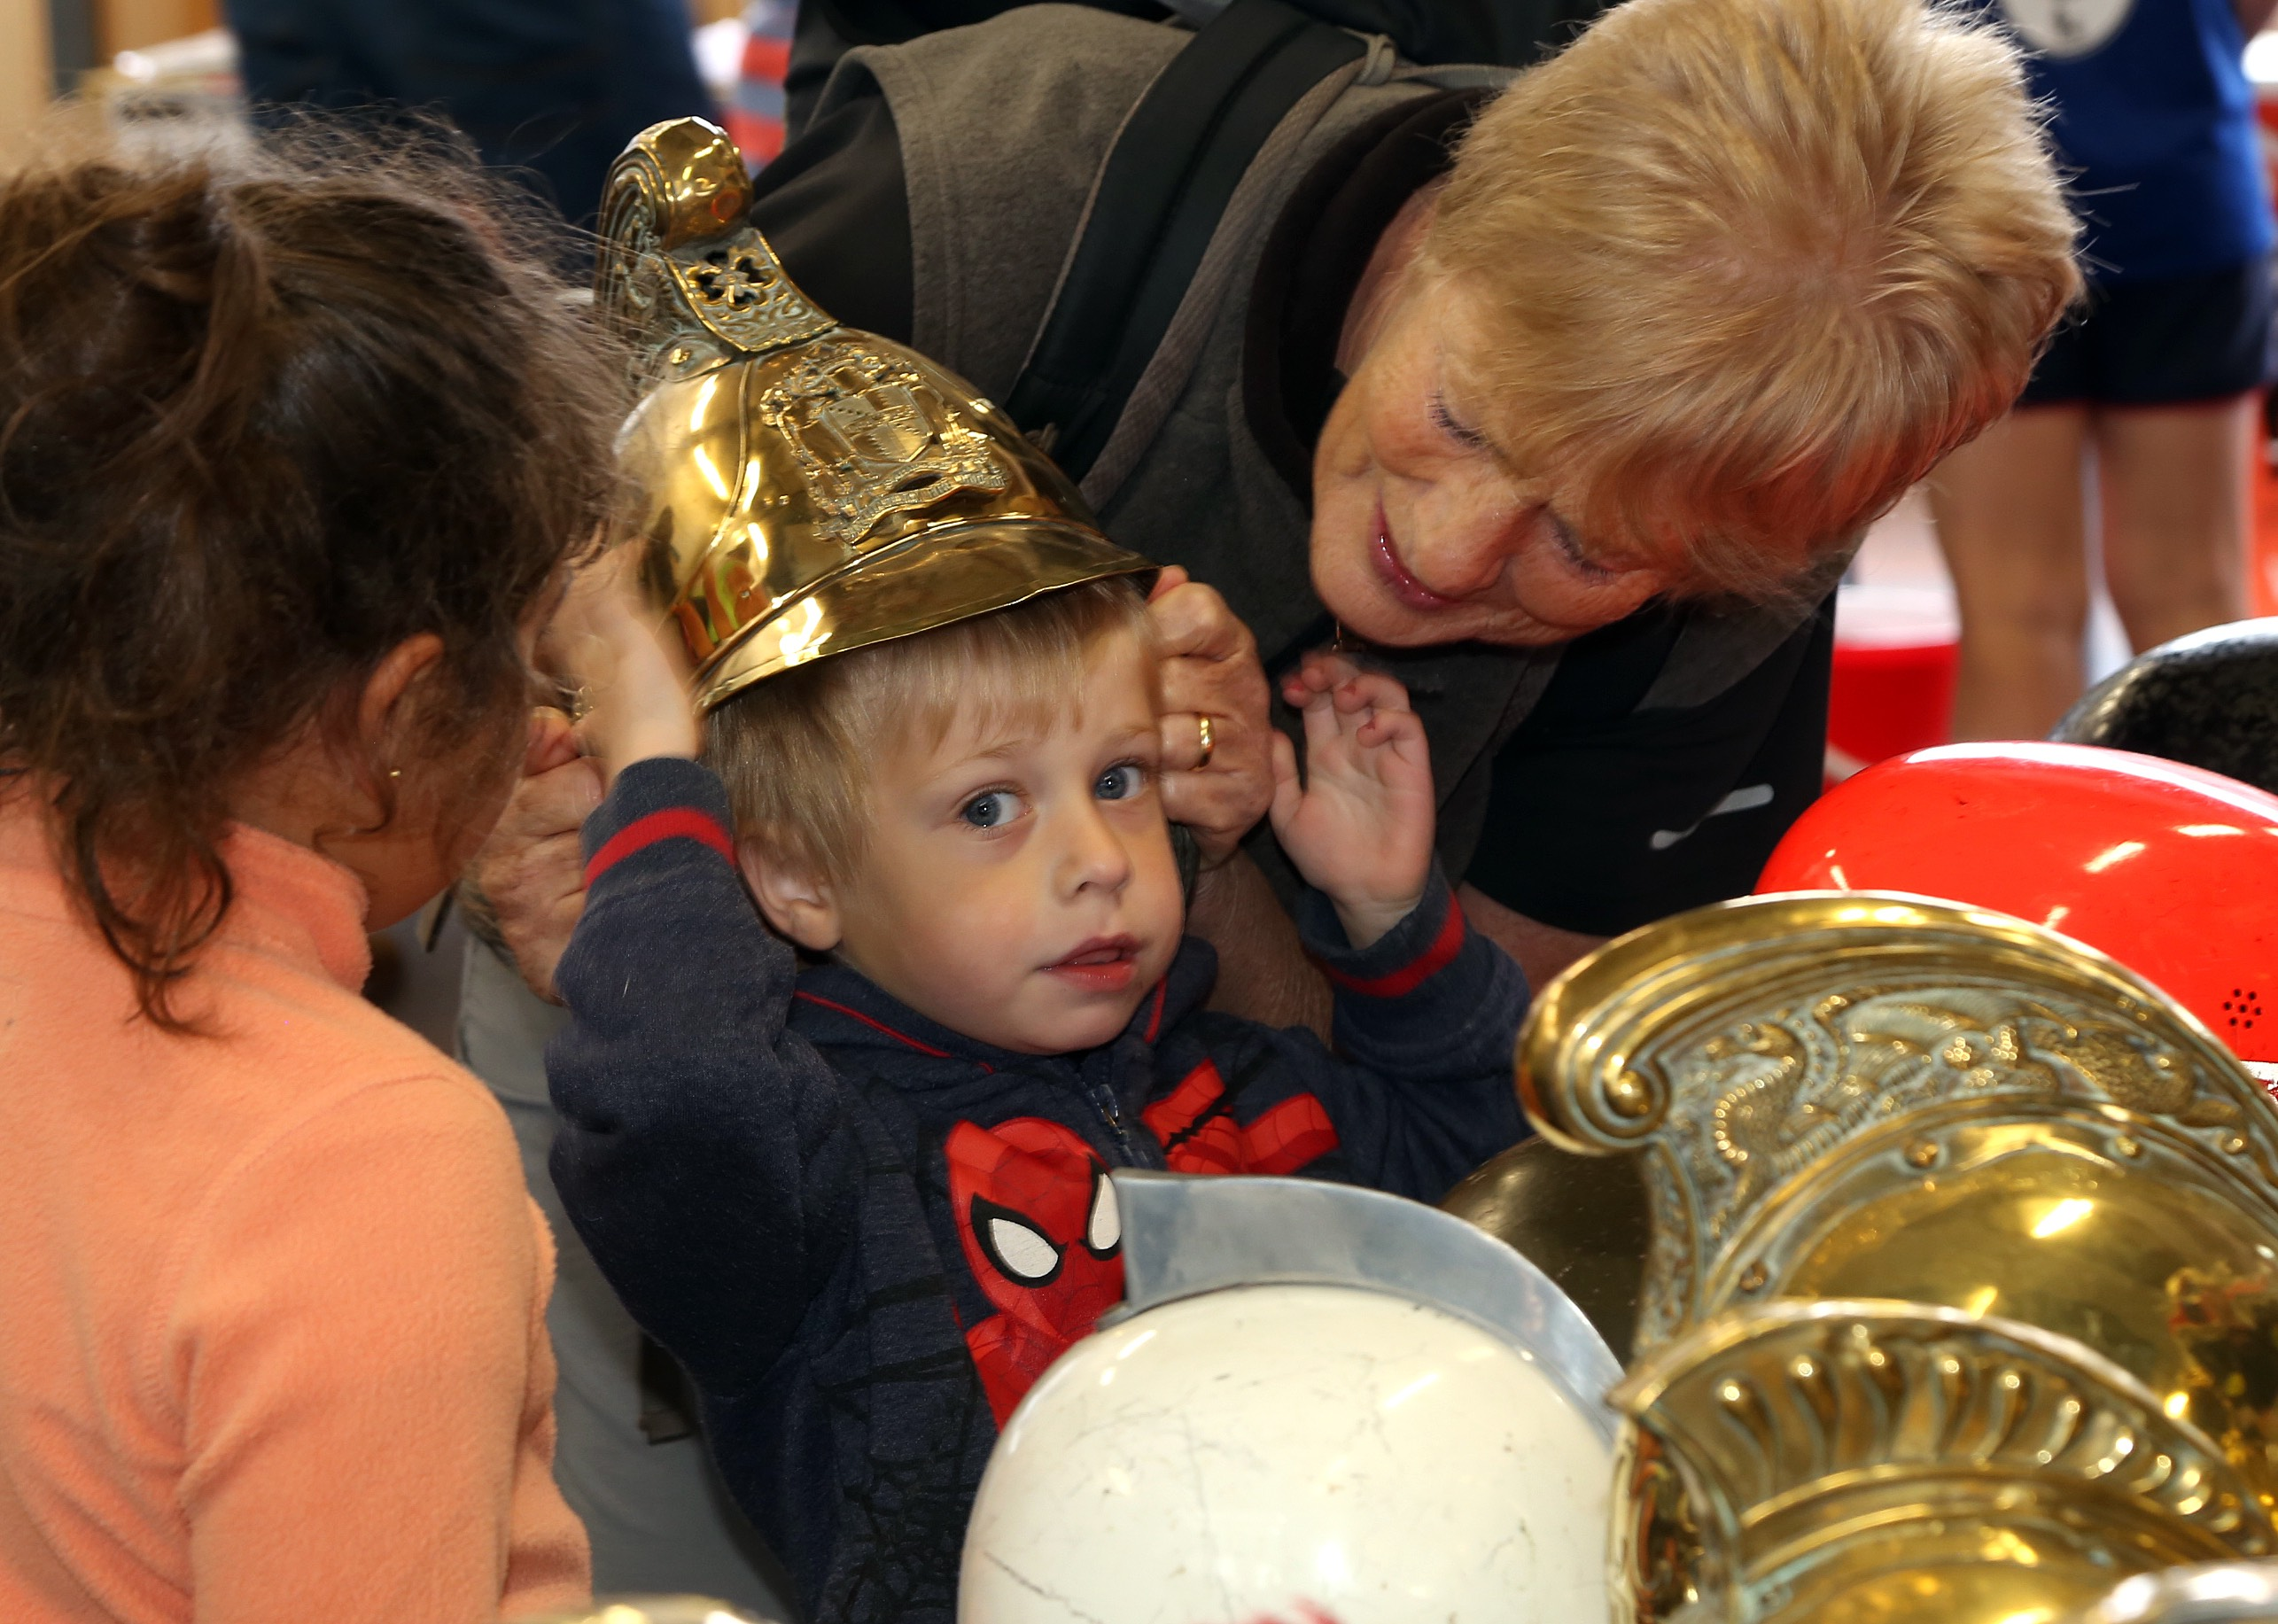 Ben Jones (aged 3) tries on a firefighter's helmet for size pictured with his grandmother Sue Challinor, from Shrewsbury.